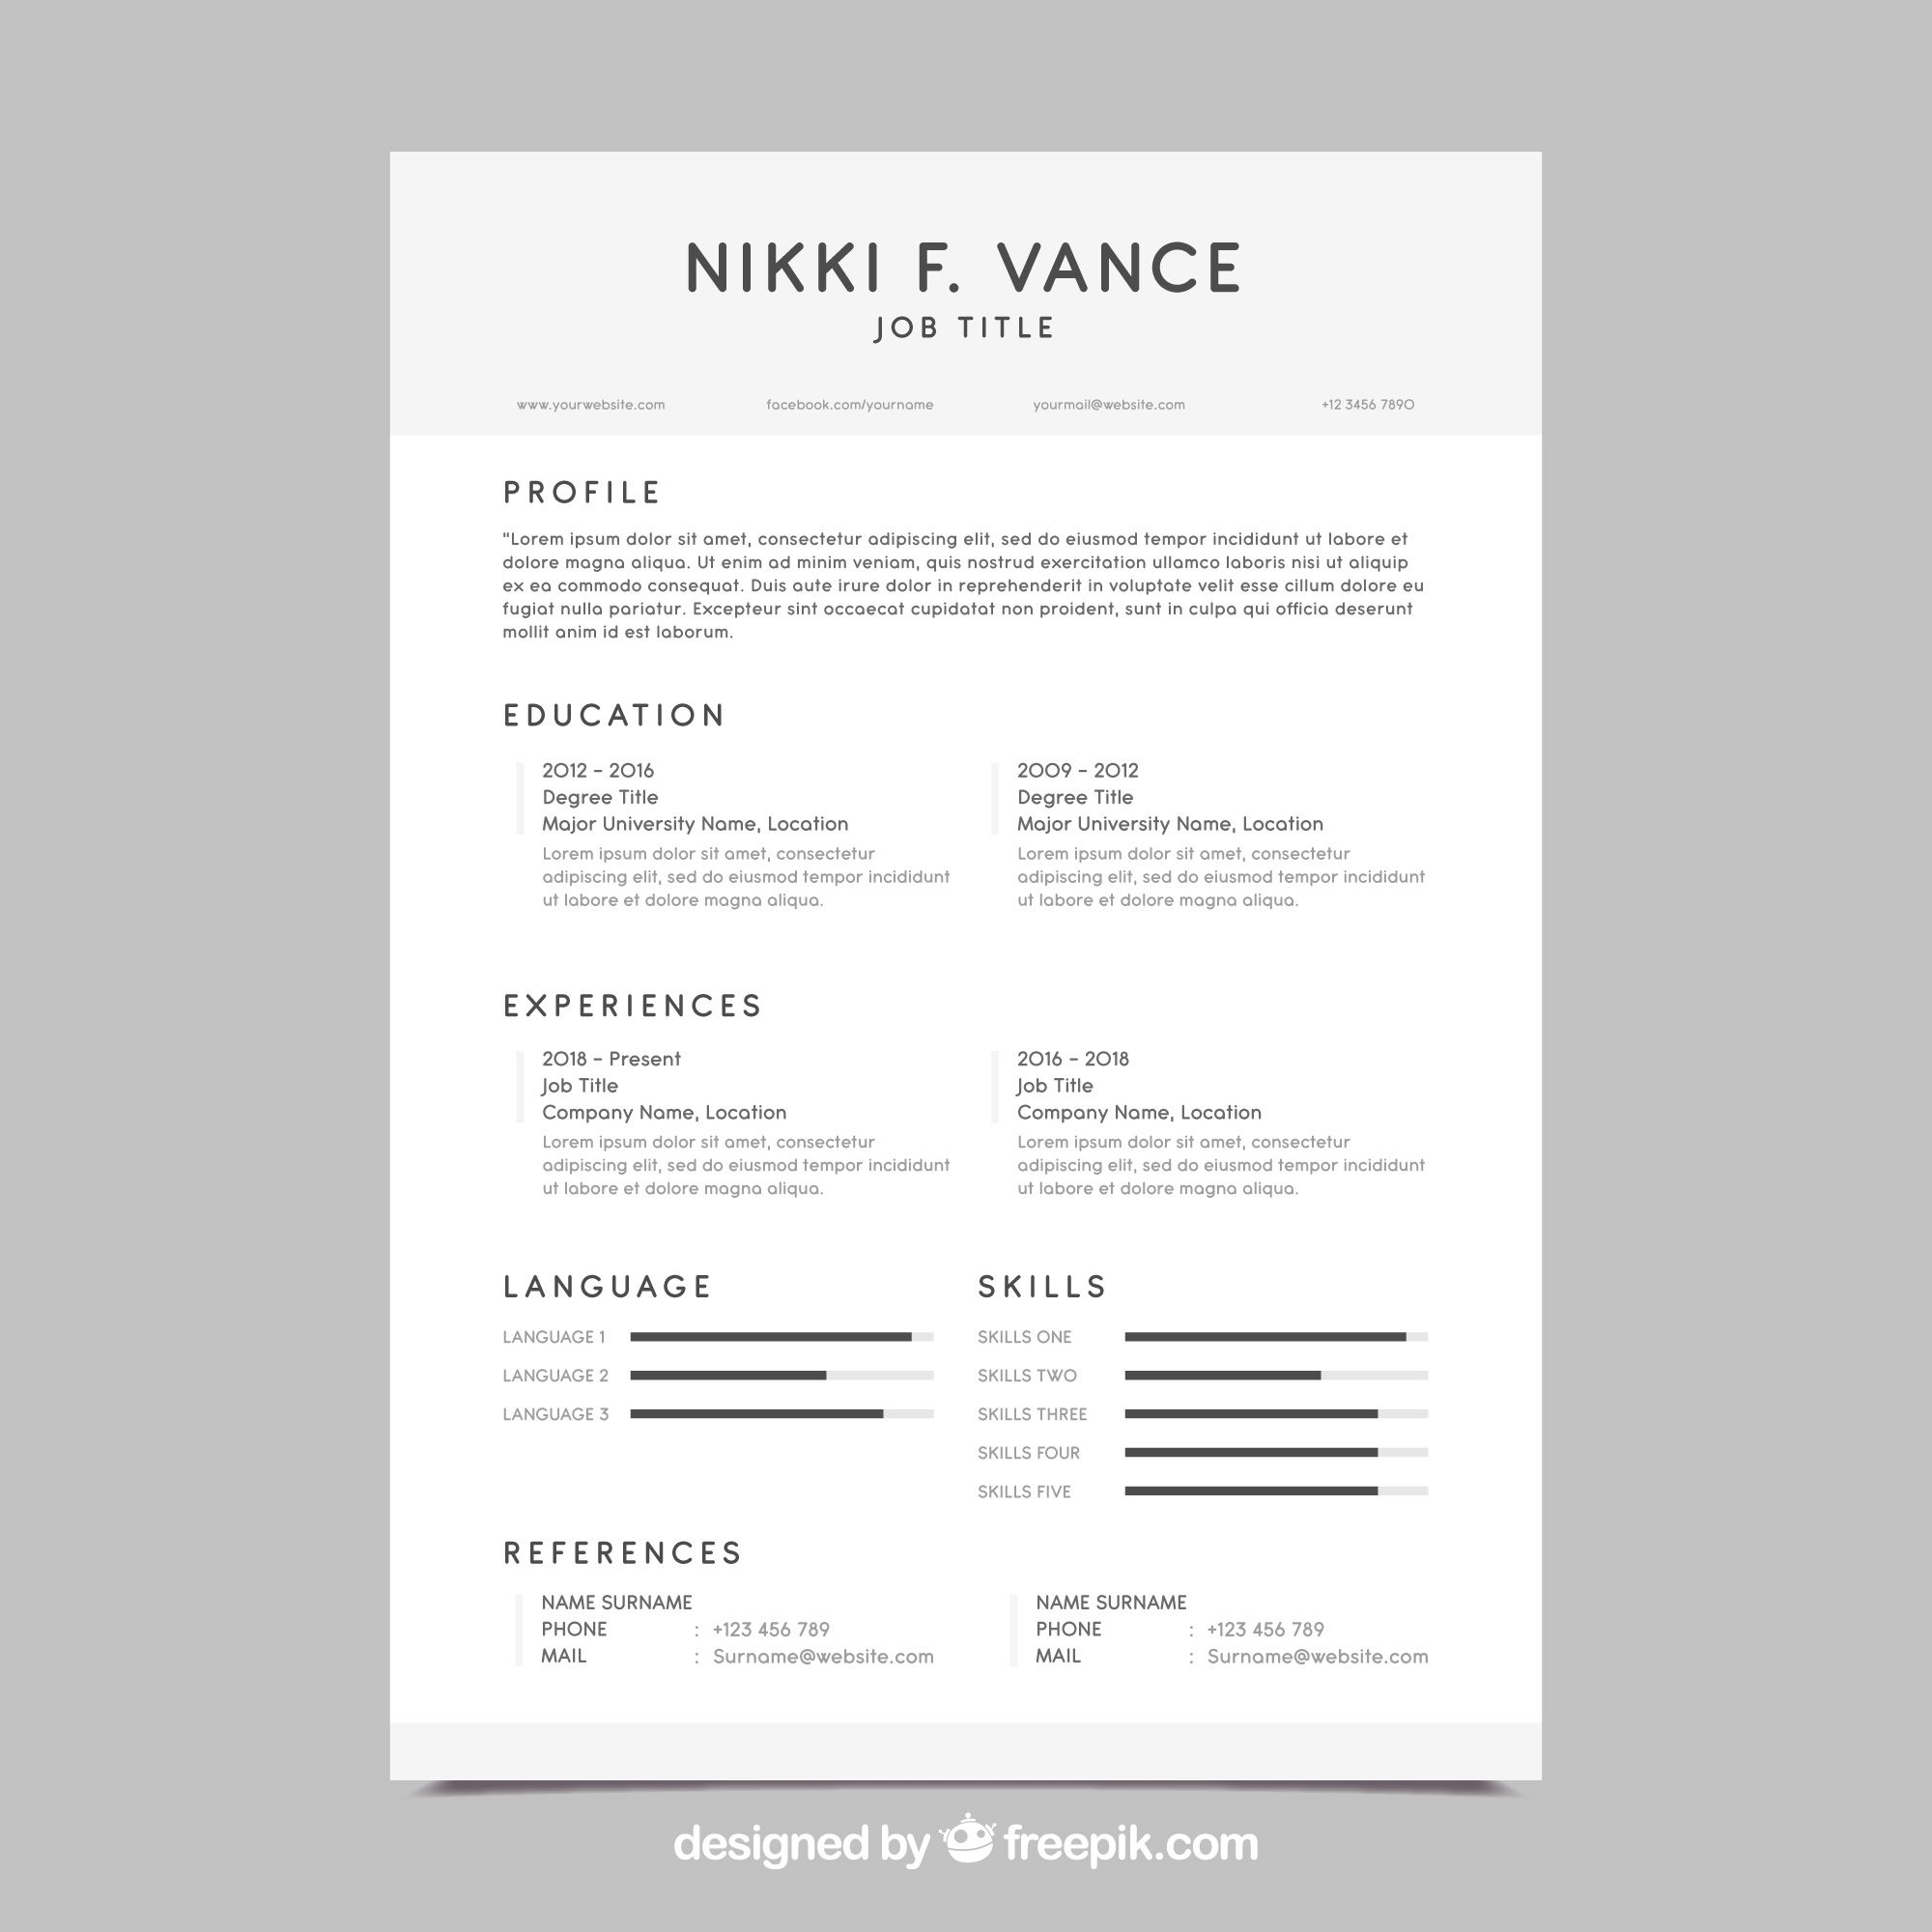 What Resume Format is Best & How to Choose a Good Resume Template?